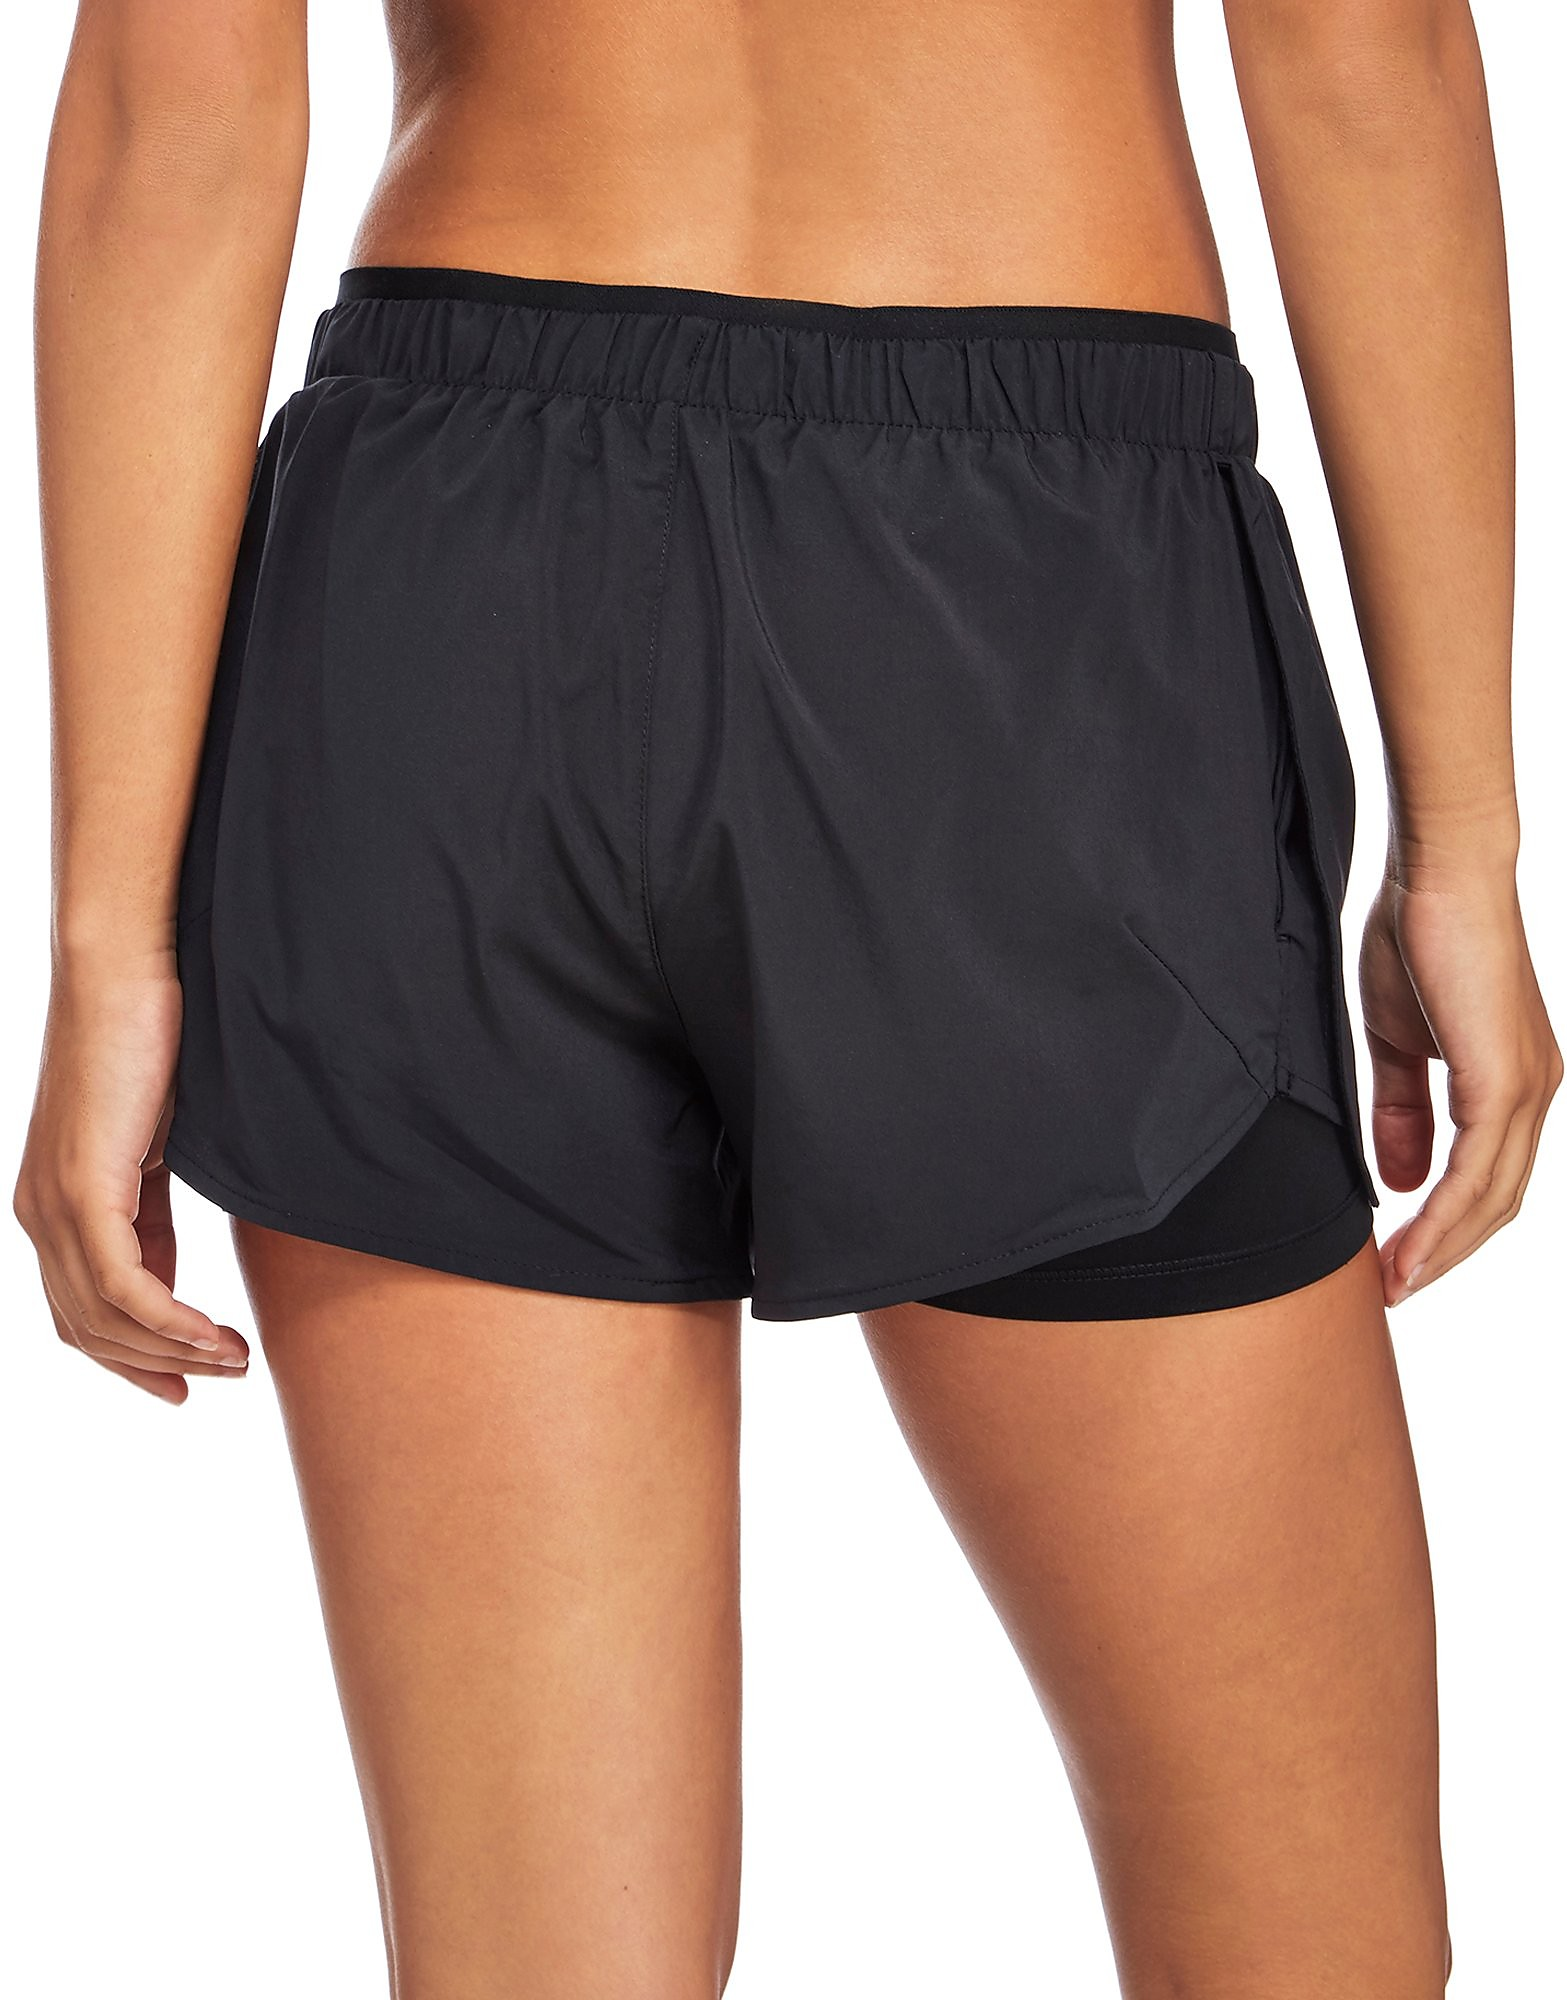 Nike Full Flex 2-In-1 2.0 Shorts